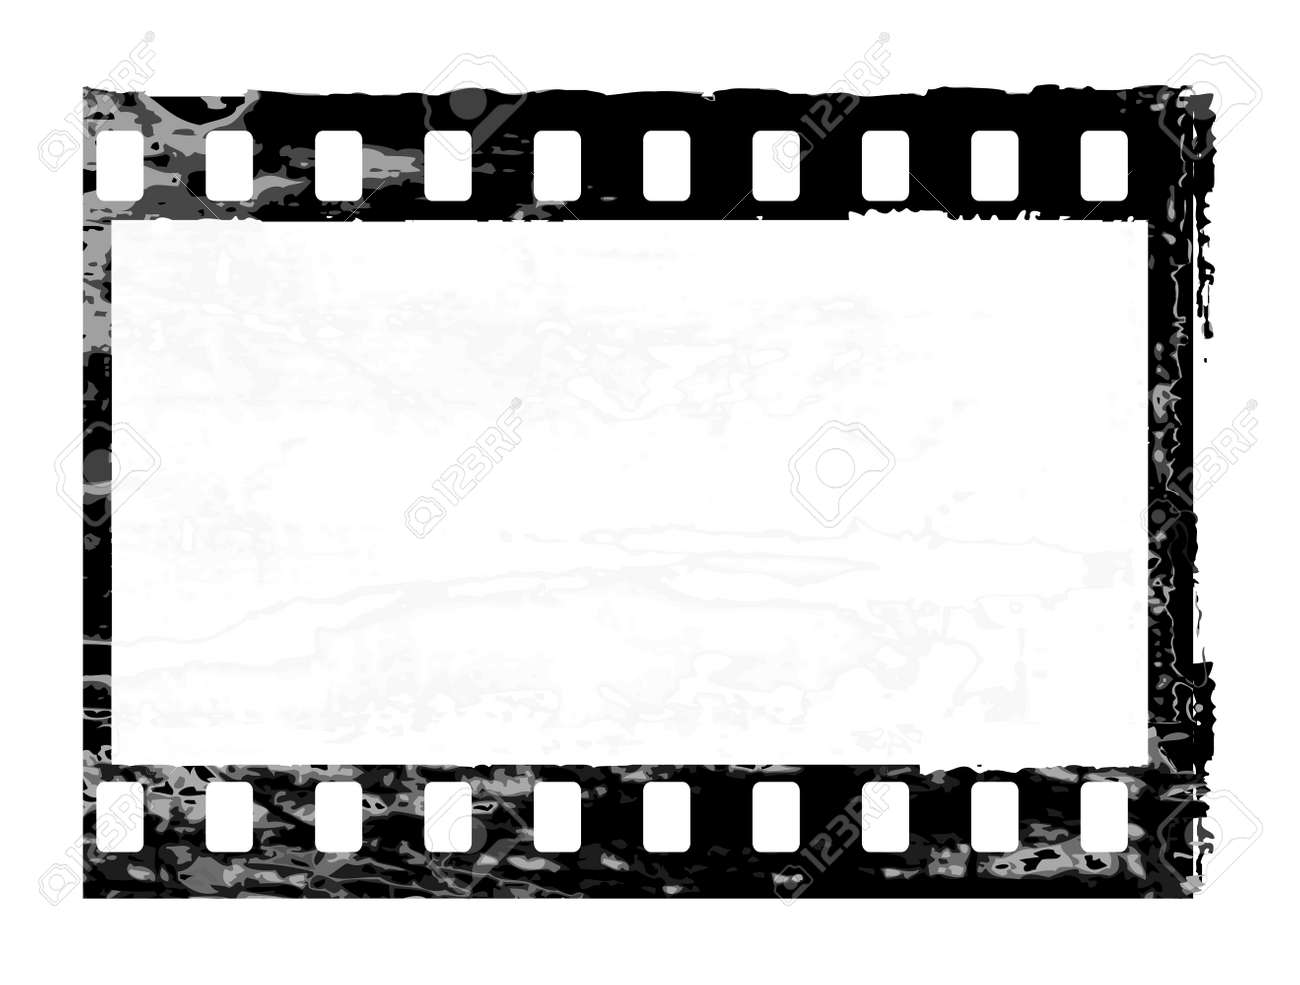 Aged Vector Illustration Of A Grunge Filmstrip Frame. Royalty Free ...